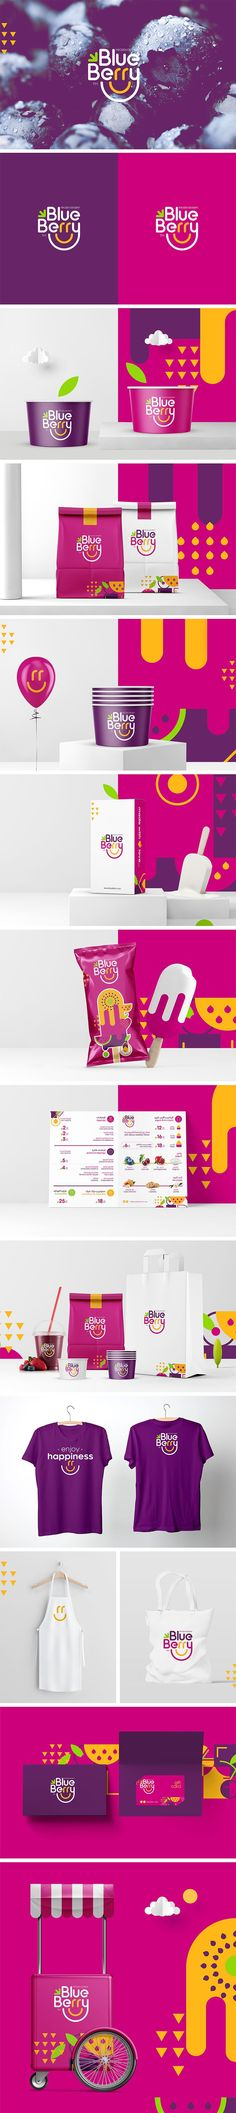 Blueberry Frozen Dessert Branding by Millimeter Brands